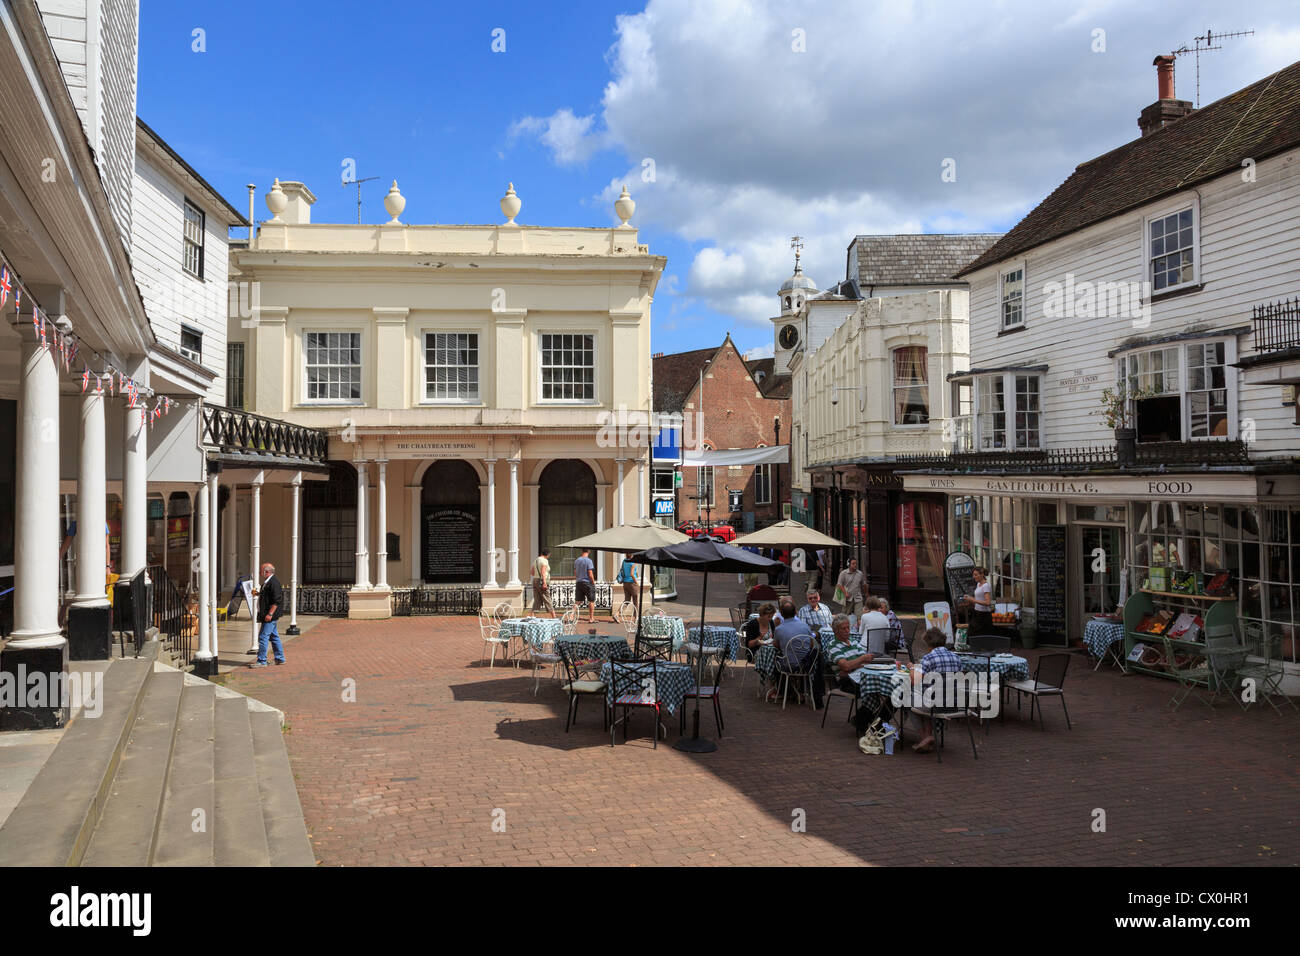 People dining outside the Gastronomia delicatessen street cafe on The Pantiles, Royal Tunbridge Wells Kent England - Stock Image